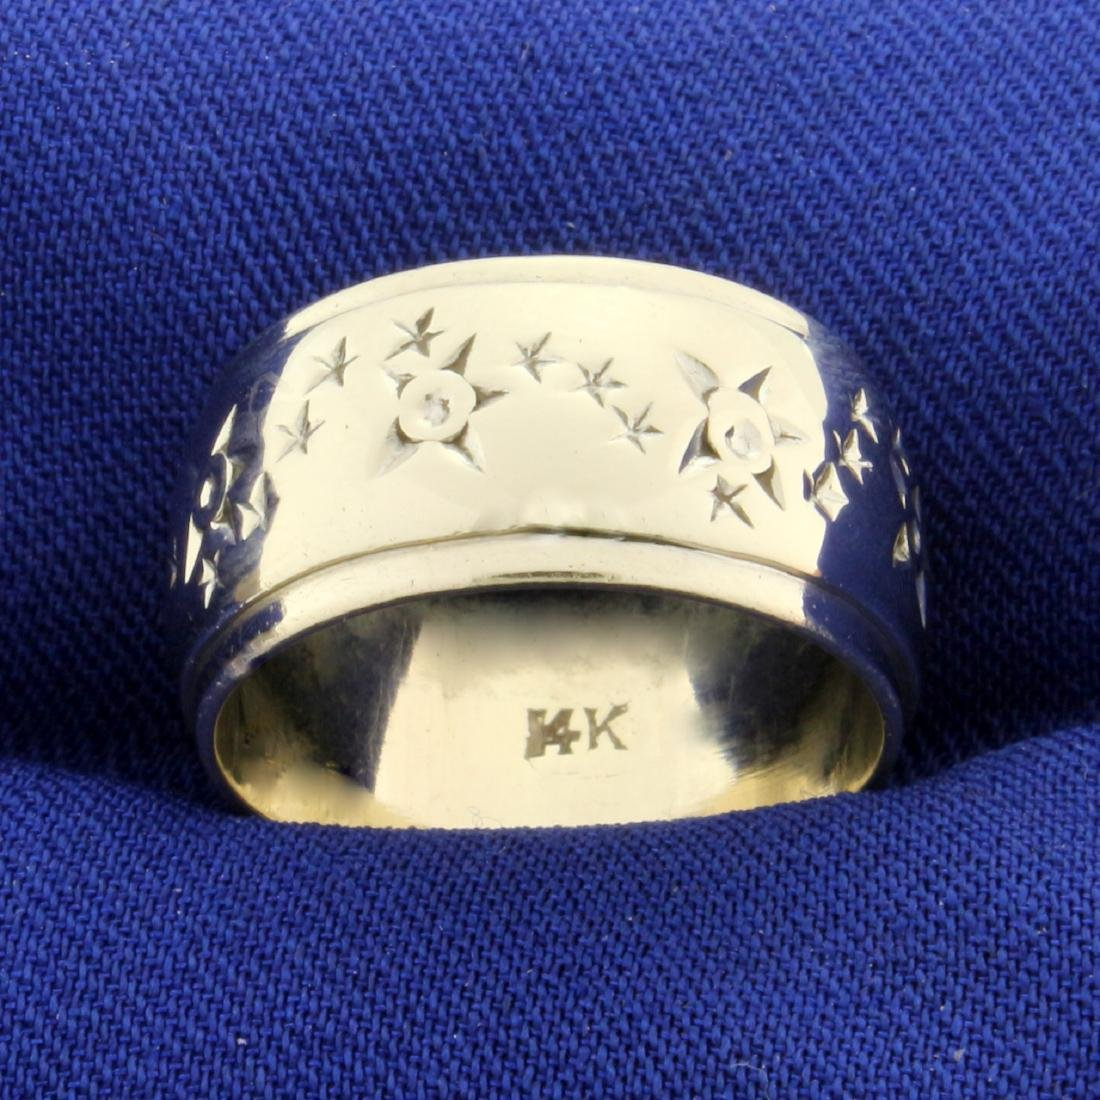 Wide Band Ring with Star Design in 14K White Gold